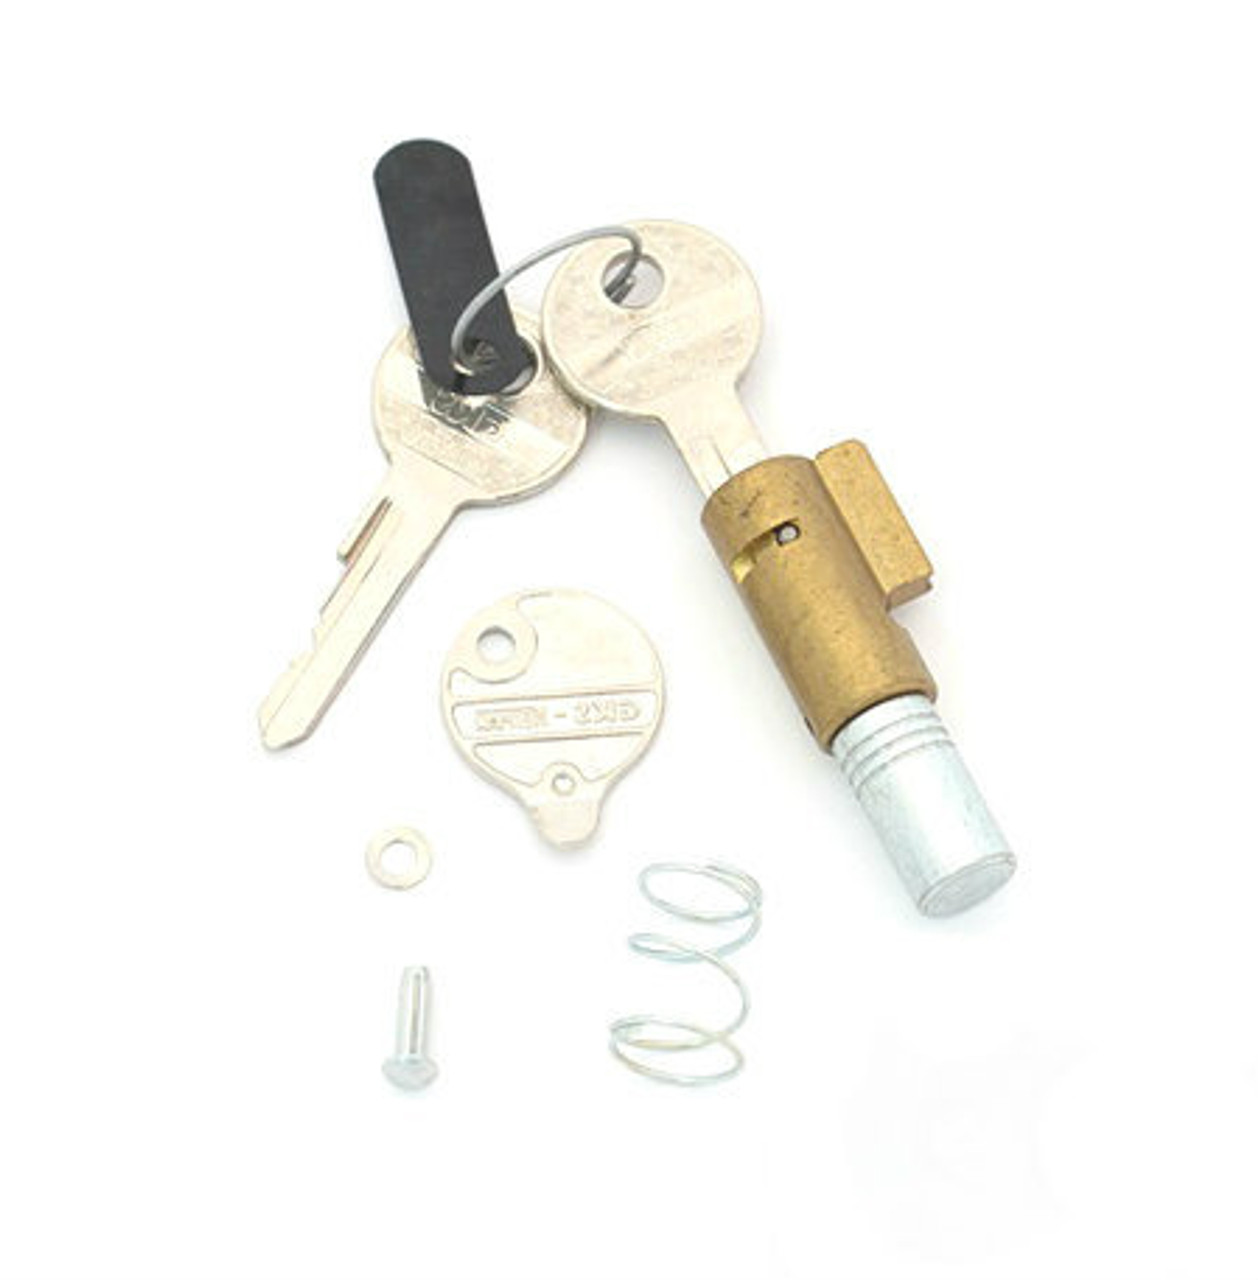 Tomos,  Vespa Citta Fork Lock and Key Set